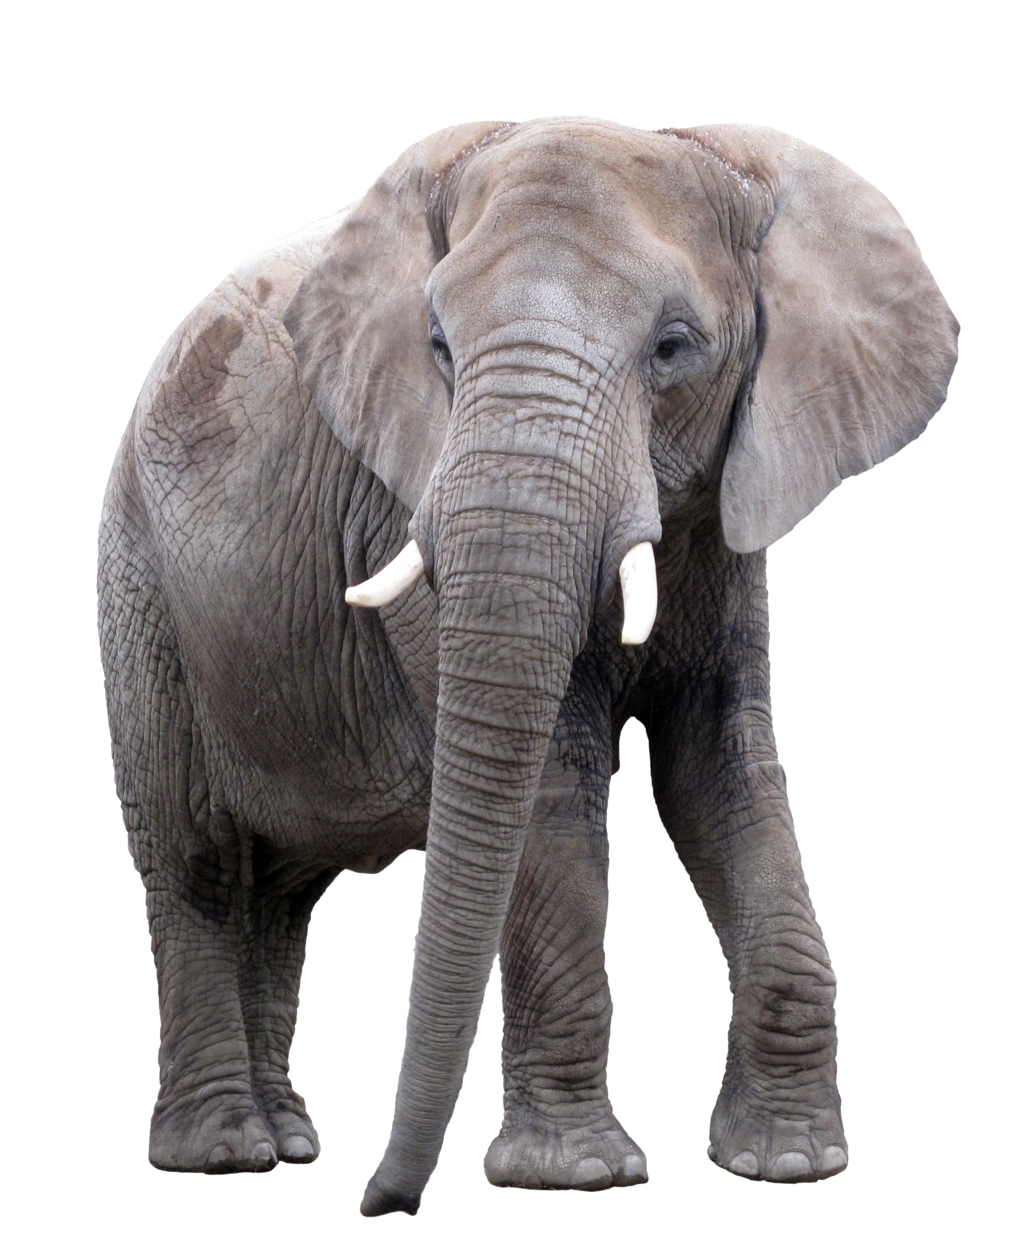 Elephant Png Elephant Animal African Photos Free Transparent Png Logos To created add 34 pieces, transparent elephant images of your project files with the background cleaned. elephant png elephant animal african